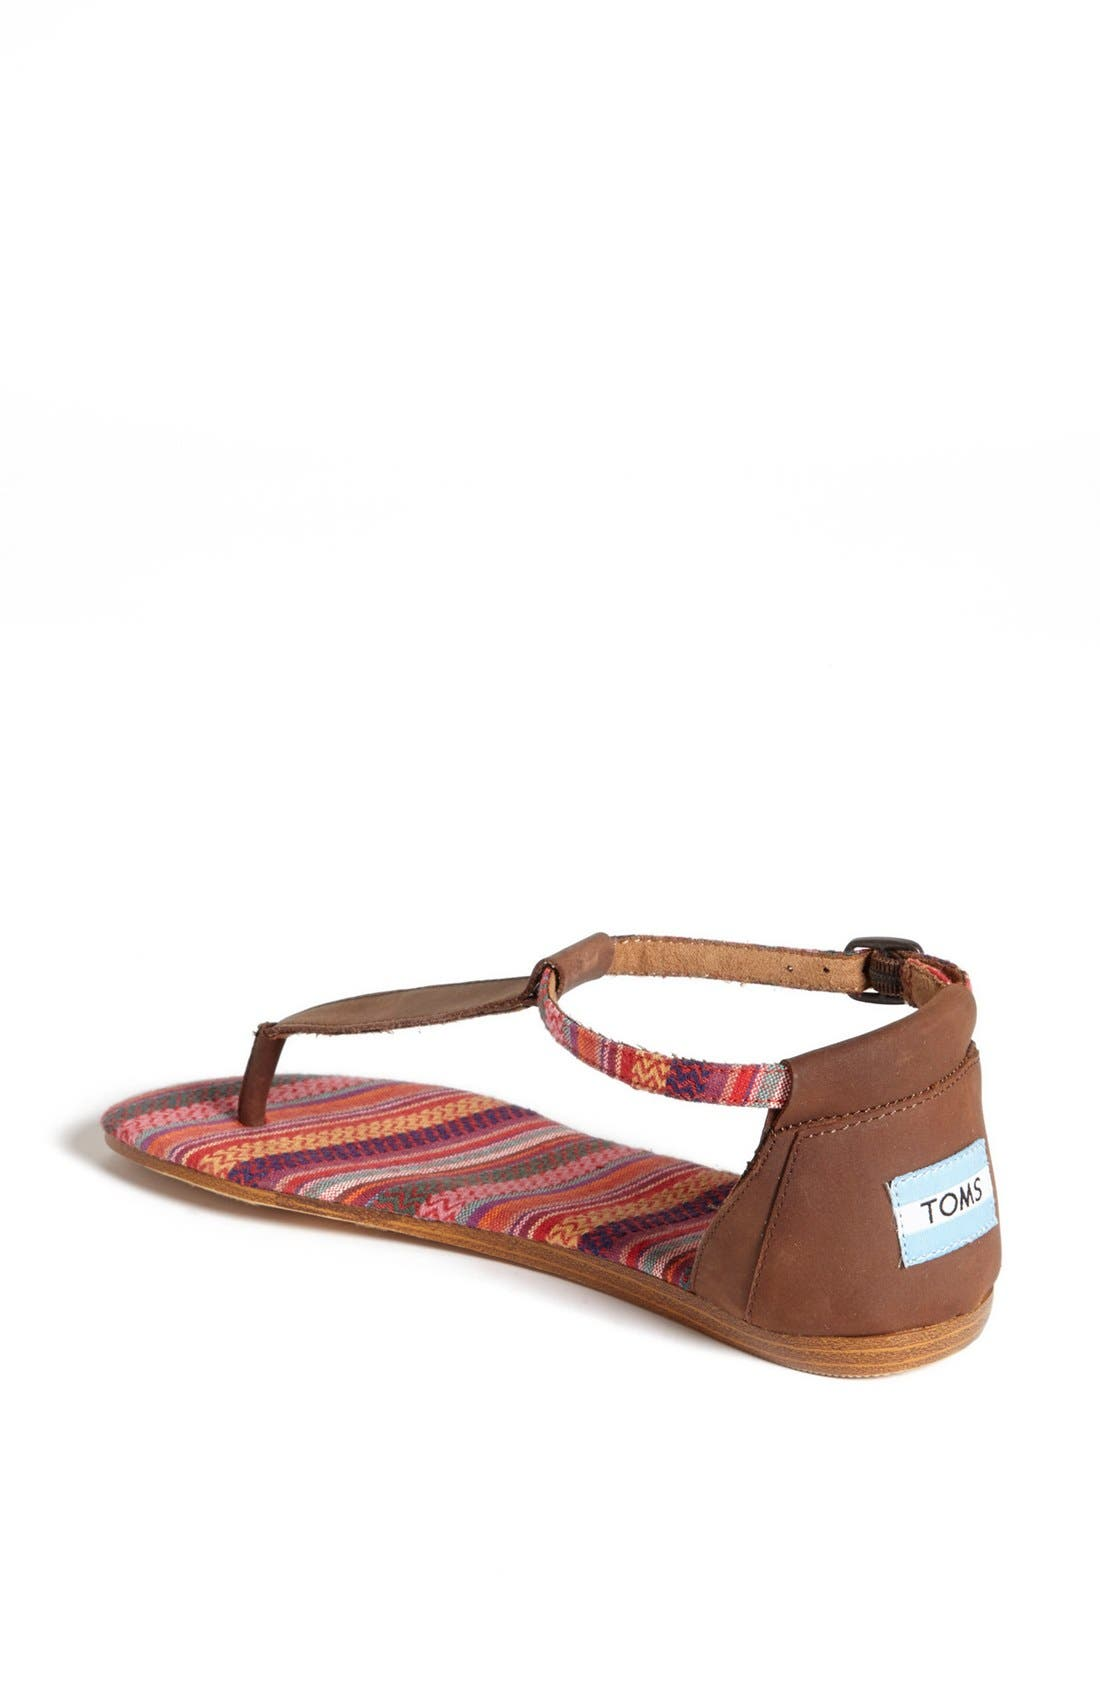 Alternate Image 2  - TOMS 'Playa' T-Strap Flat Sandal